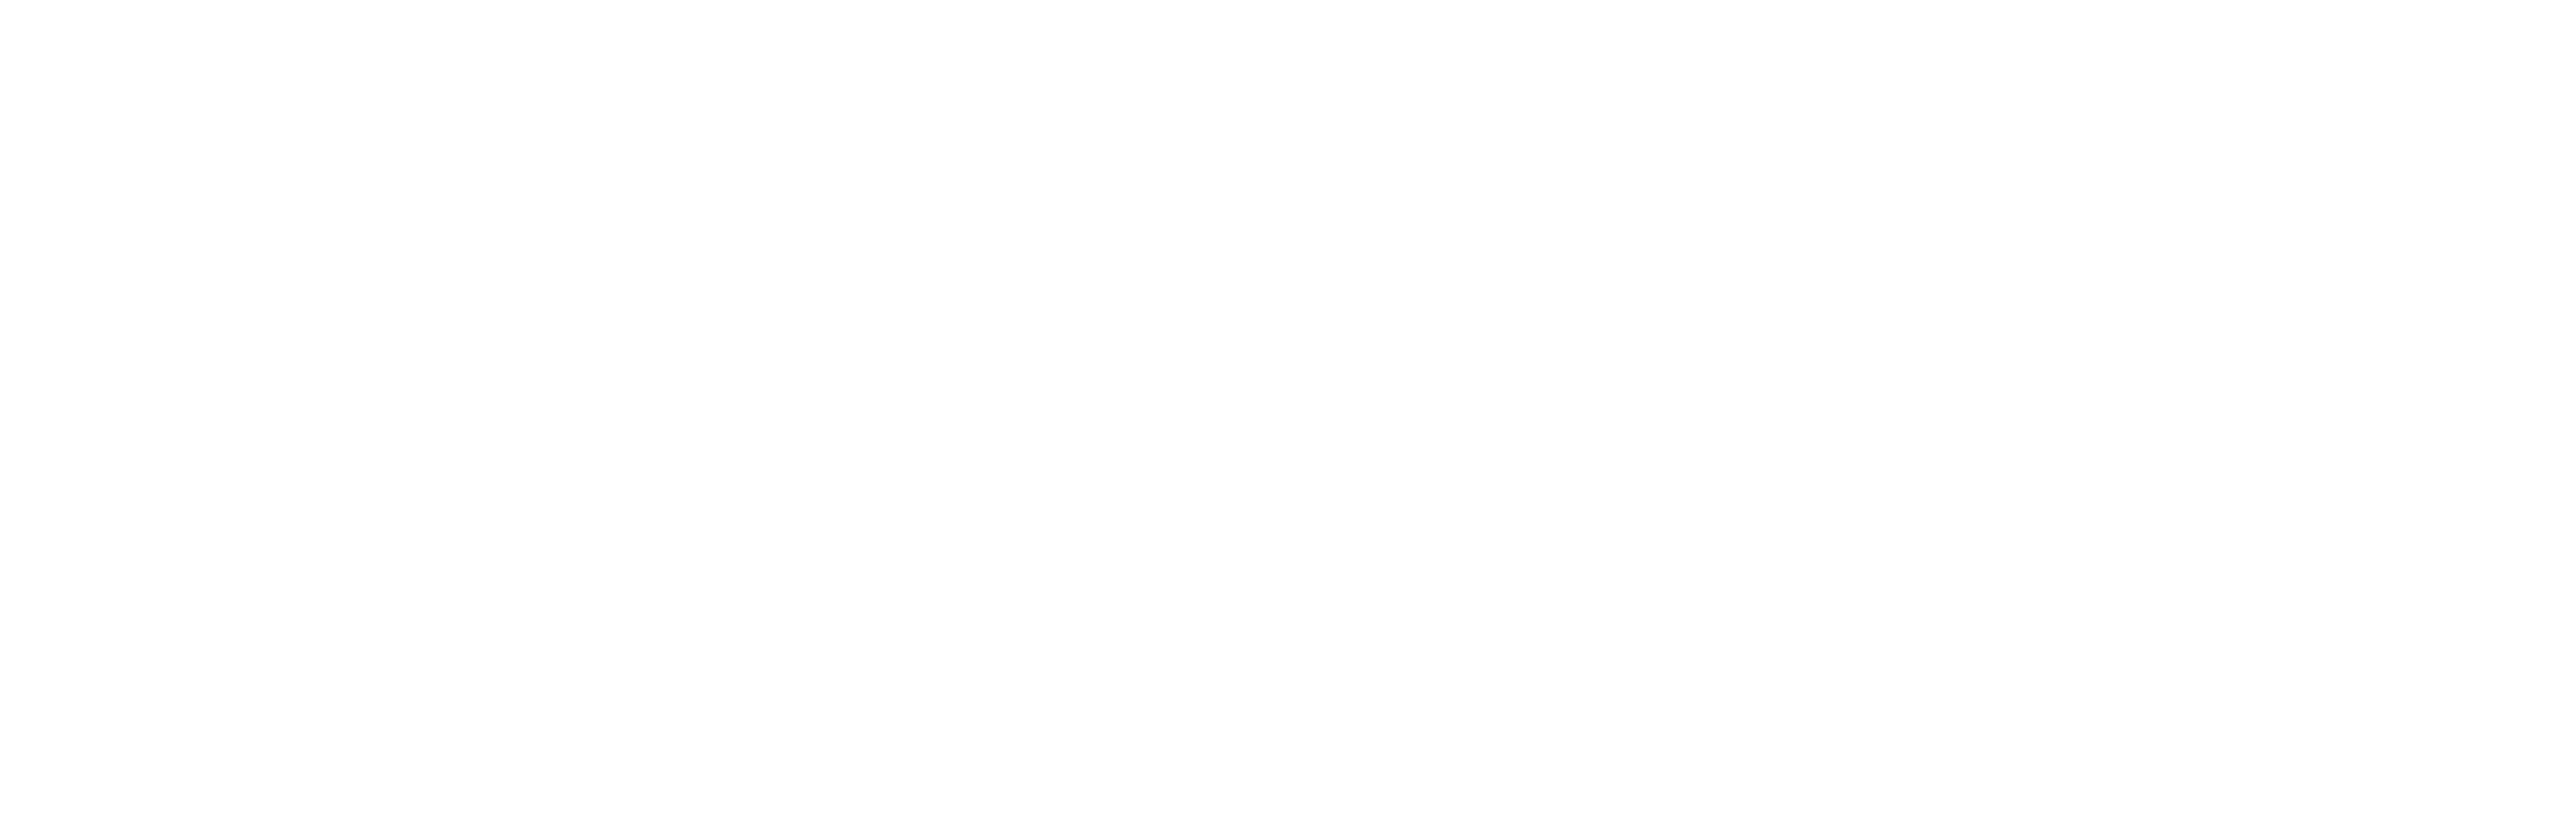 Markowitz Florist - Flower Delivery in Syracuse, NY